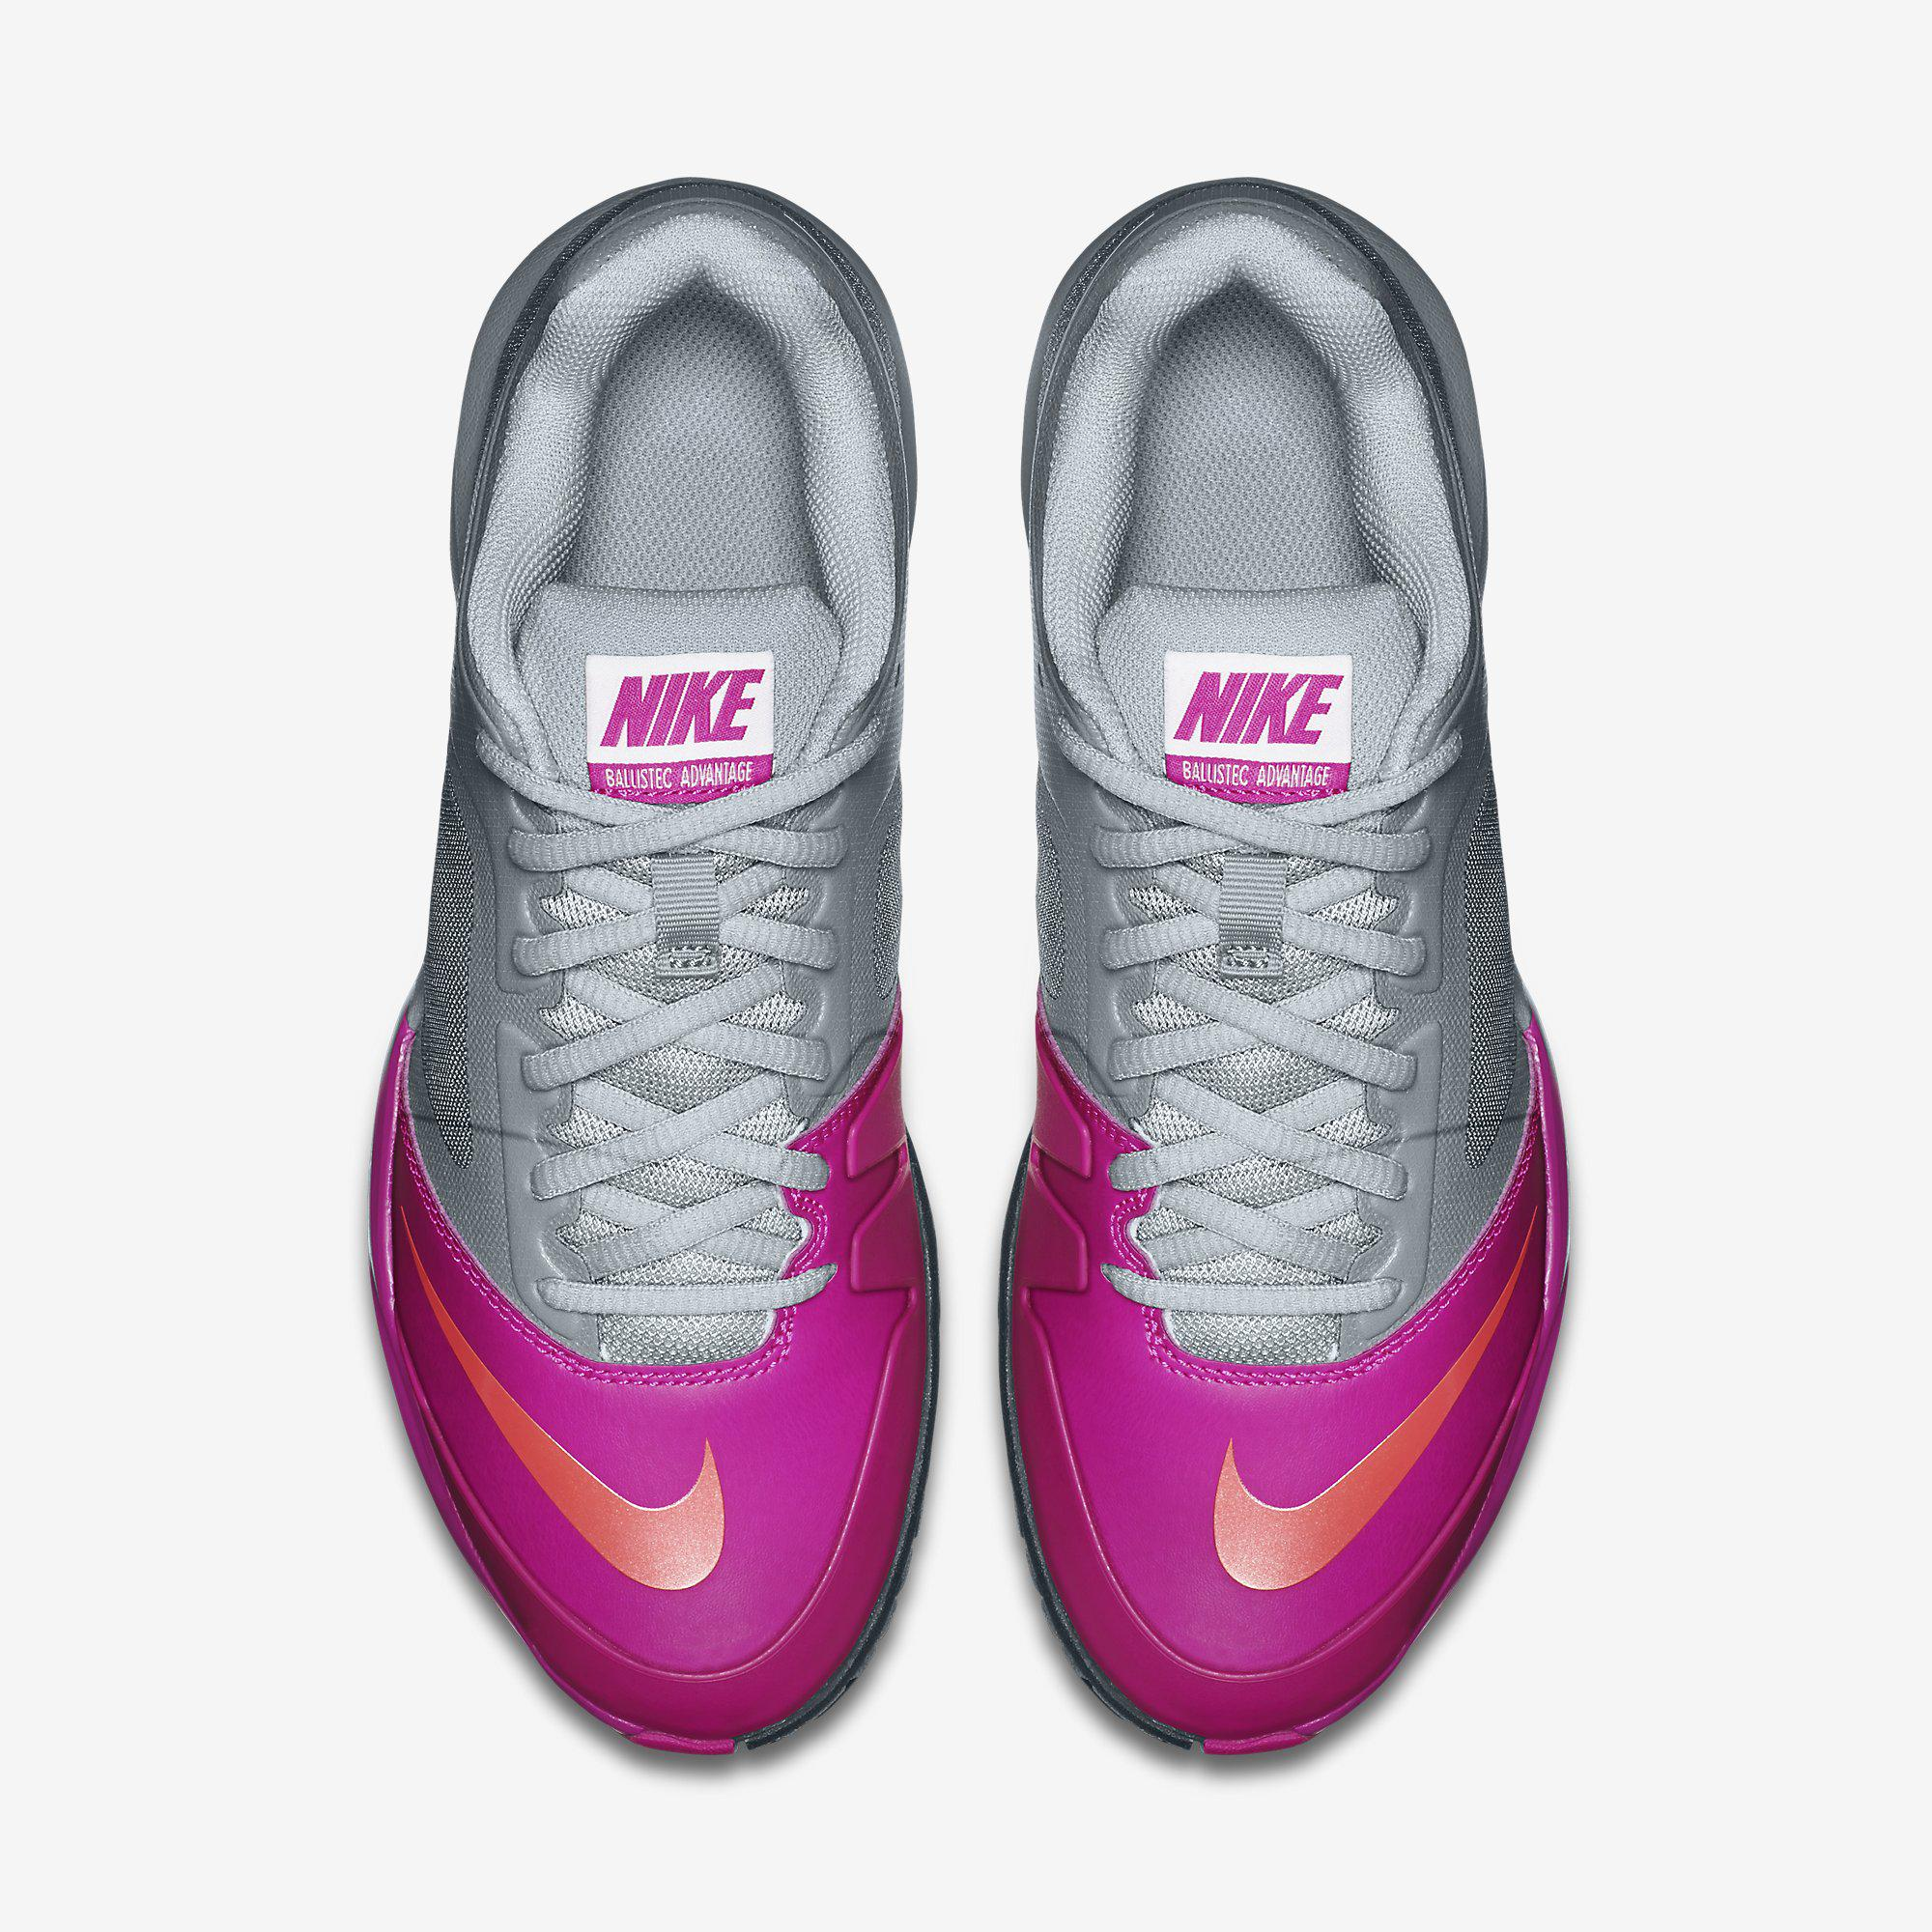 Out Of Stock. Nike Womens Dual Fusion Ballistec Advantage Tennis Shoes ...